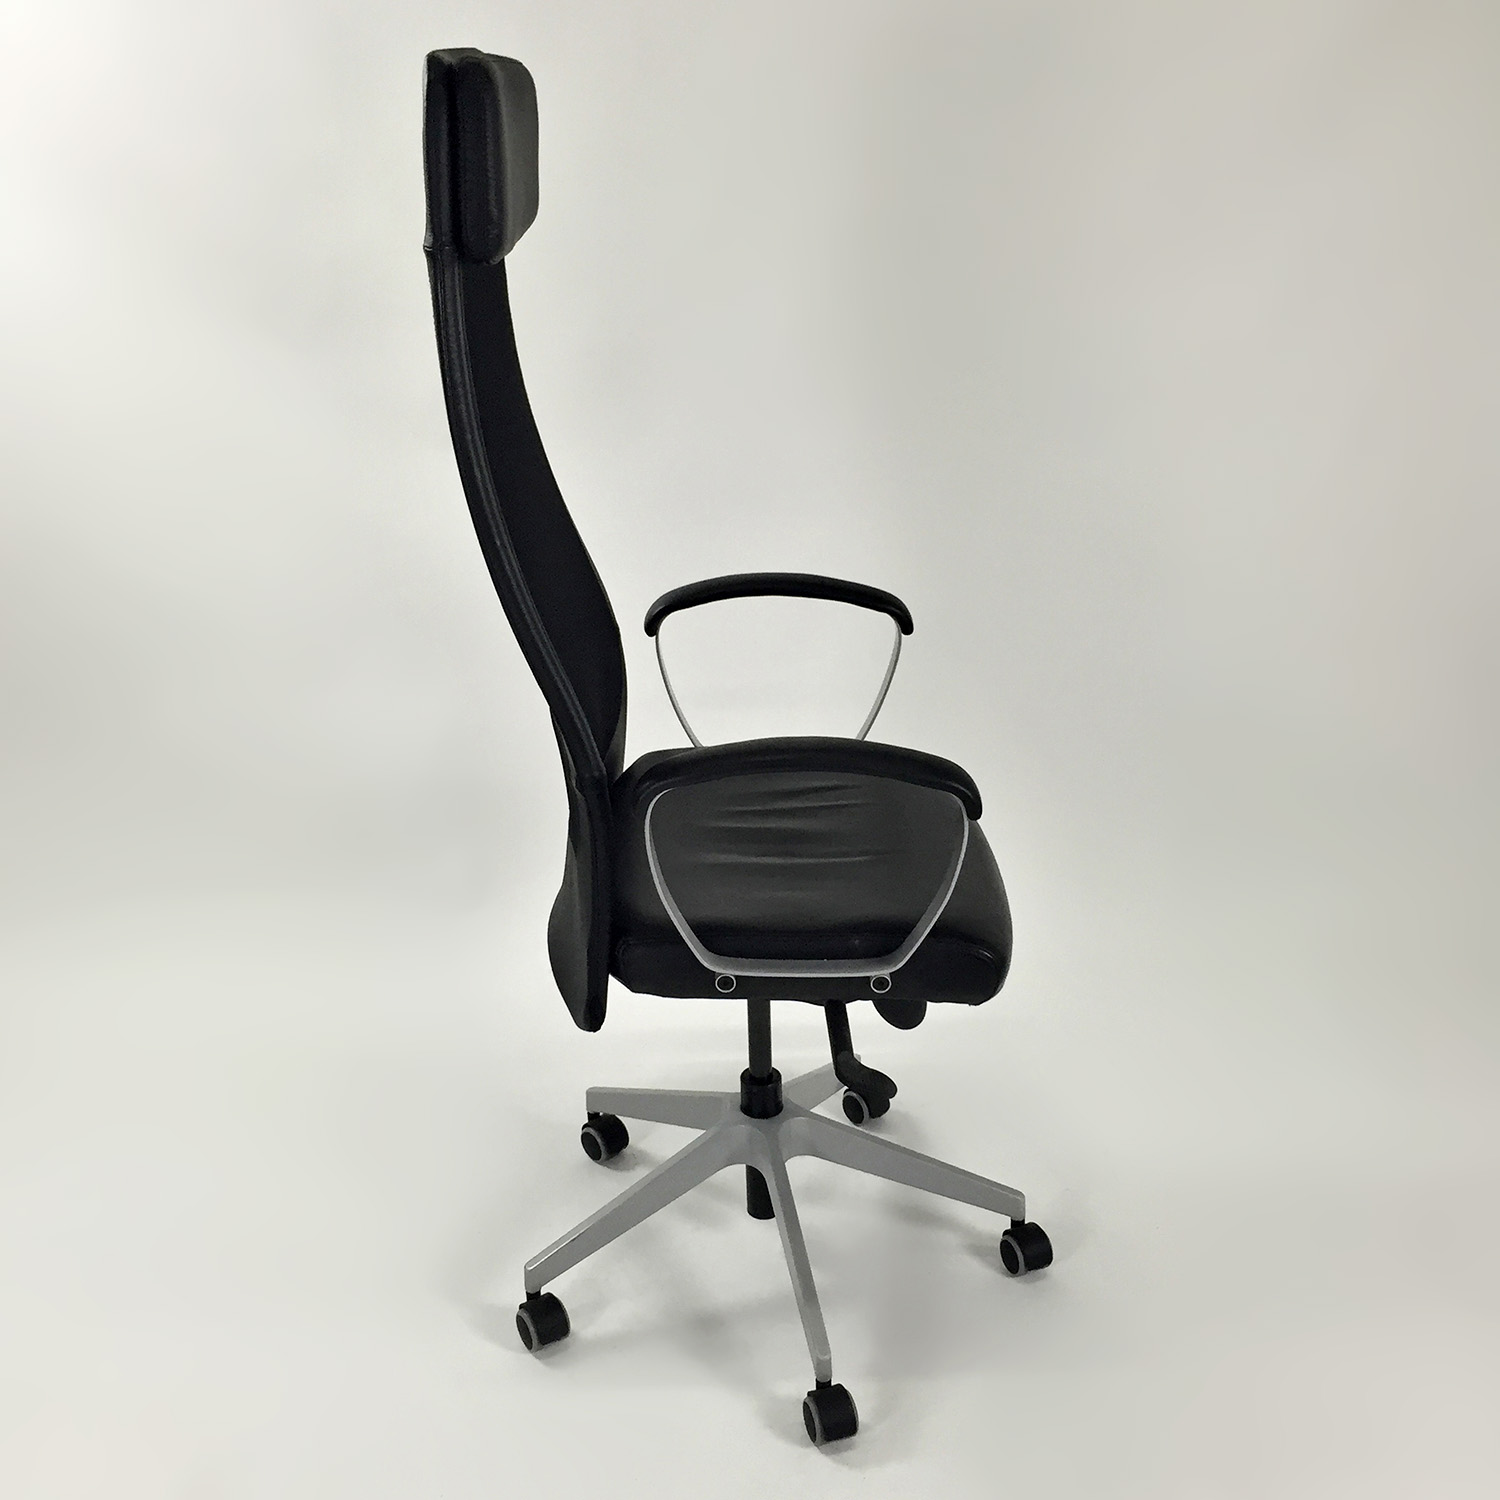 IKEA Markus Swivel Chair for sale